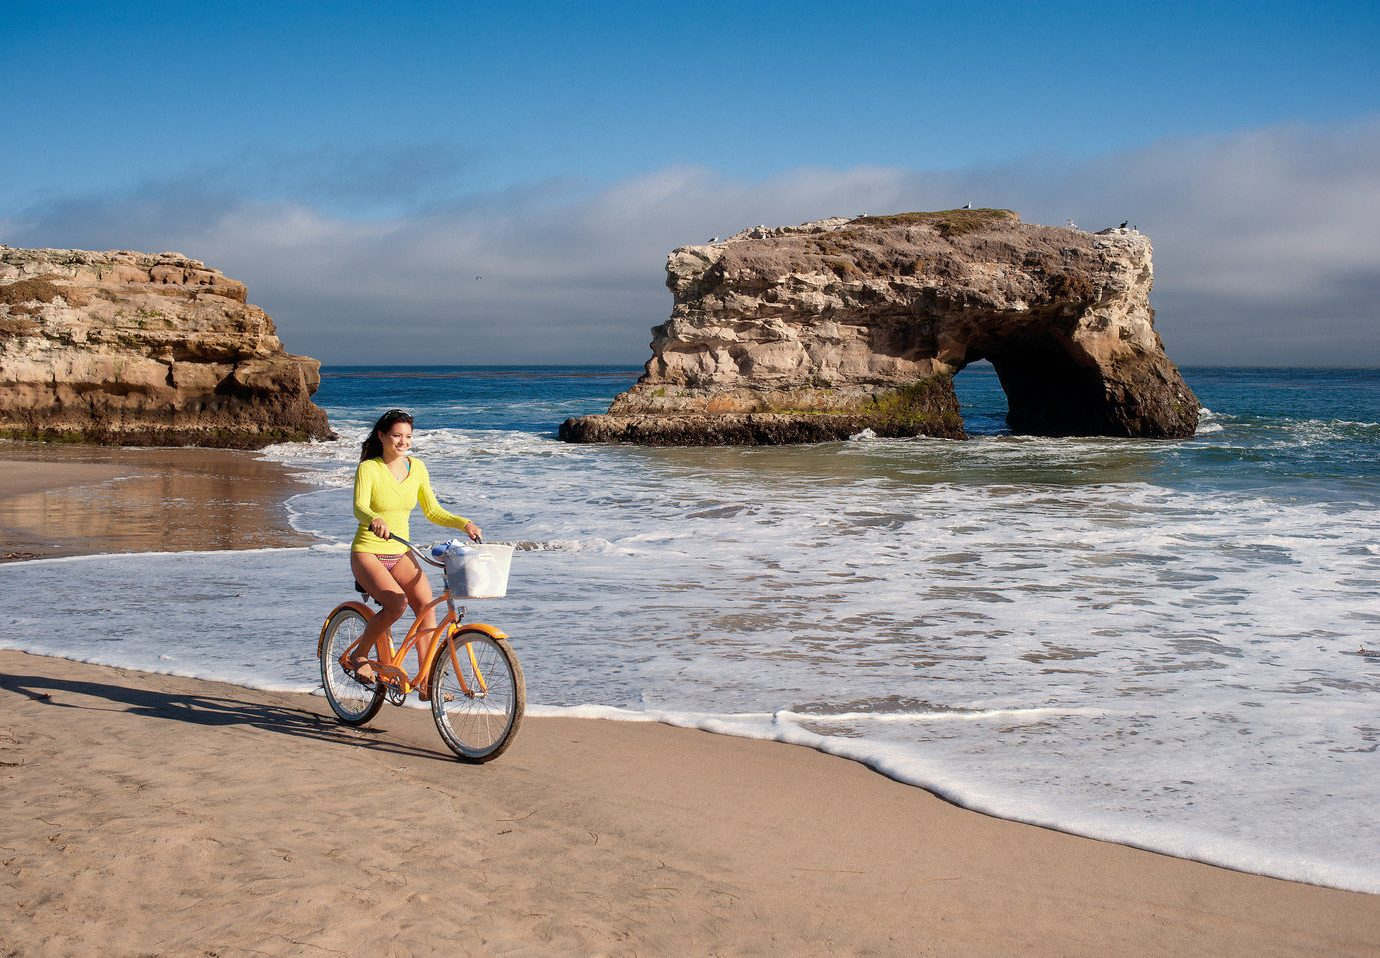 Trip Ideas outdoor sky water ground bicycle rock Beach Coast Sea body of water shore Ocean vacation vehicle Nature cape sand cliff bay wave terrain sandy